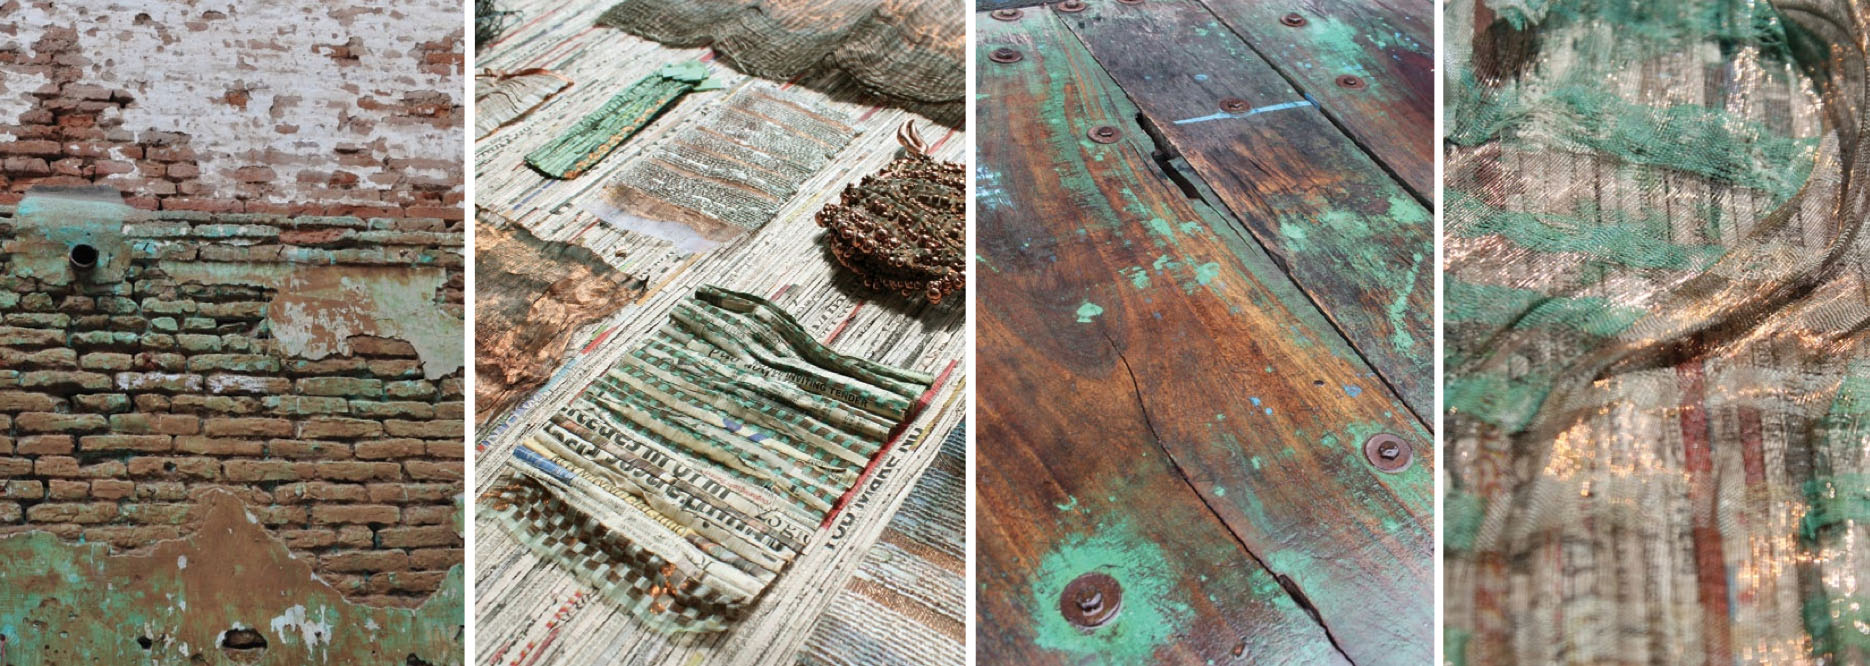 Drawing inspiration from the streets of Ahmedabad's Old City–with its aged surfaces and scraps–Neha Lad creates woven, patinated textiles from recycled copper wire and paper yarn